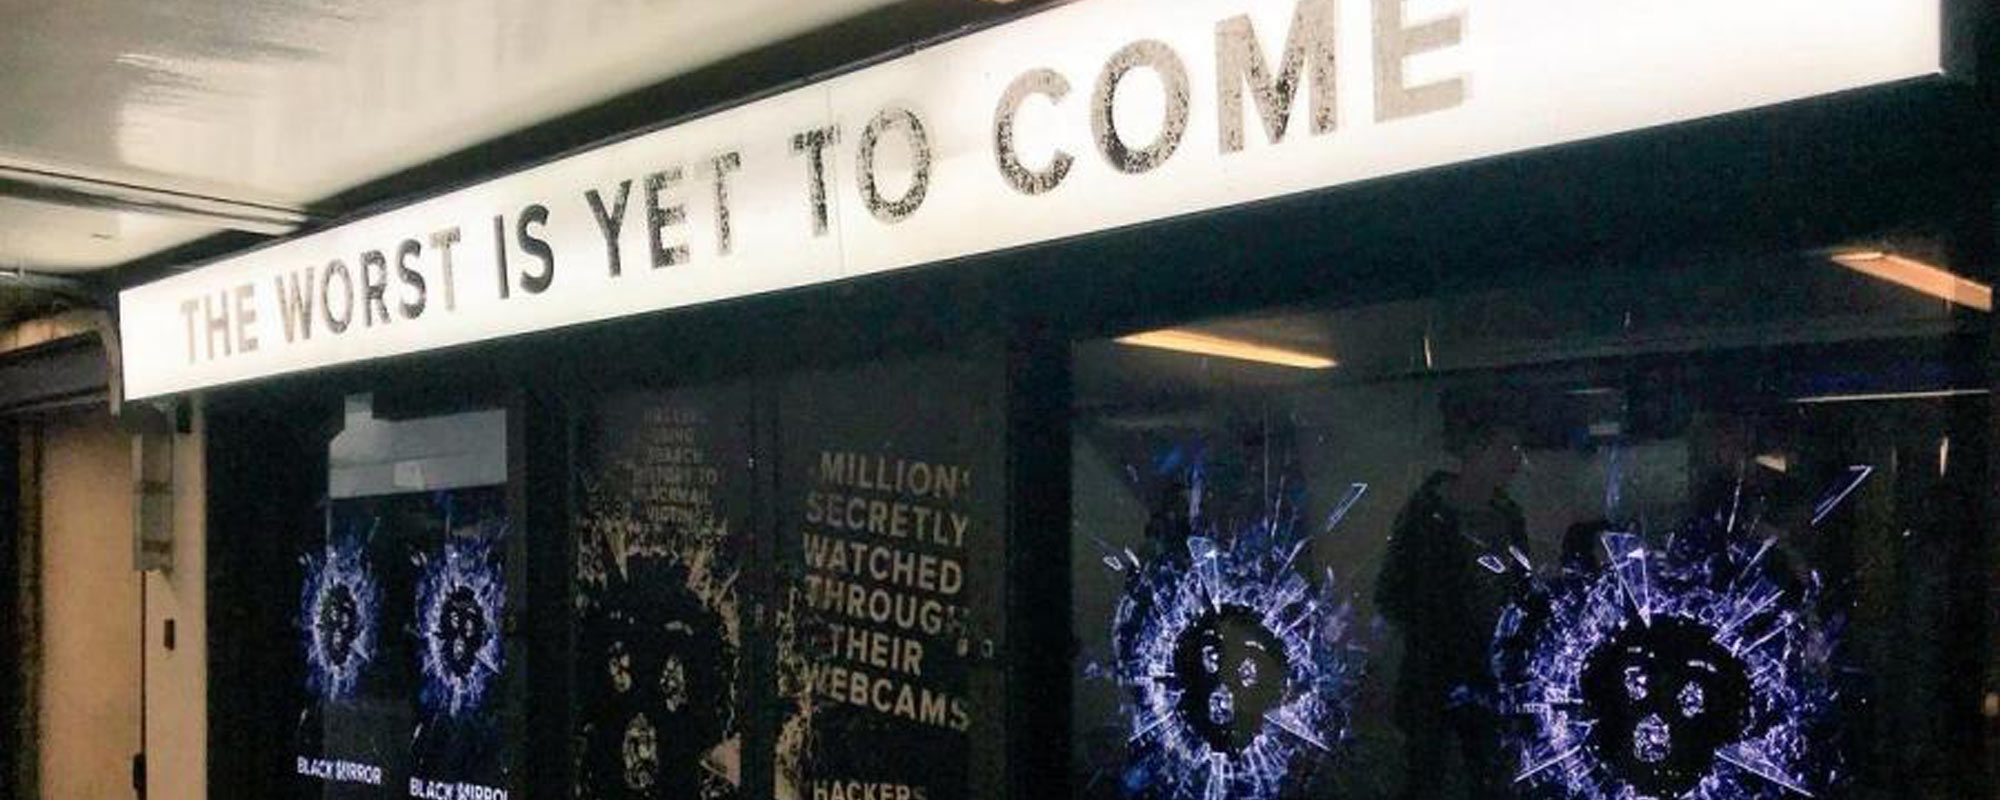 Black Mirror Takeover Ruffles Feathers at Old Street Tube Station